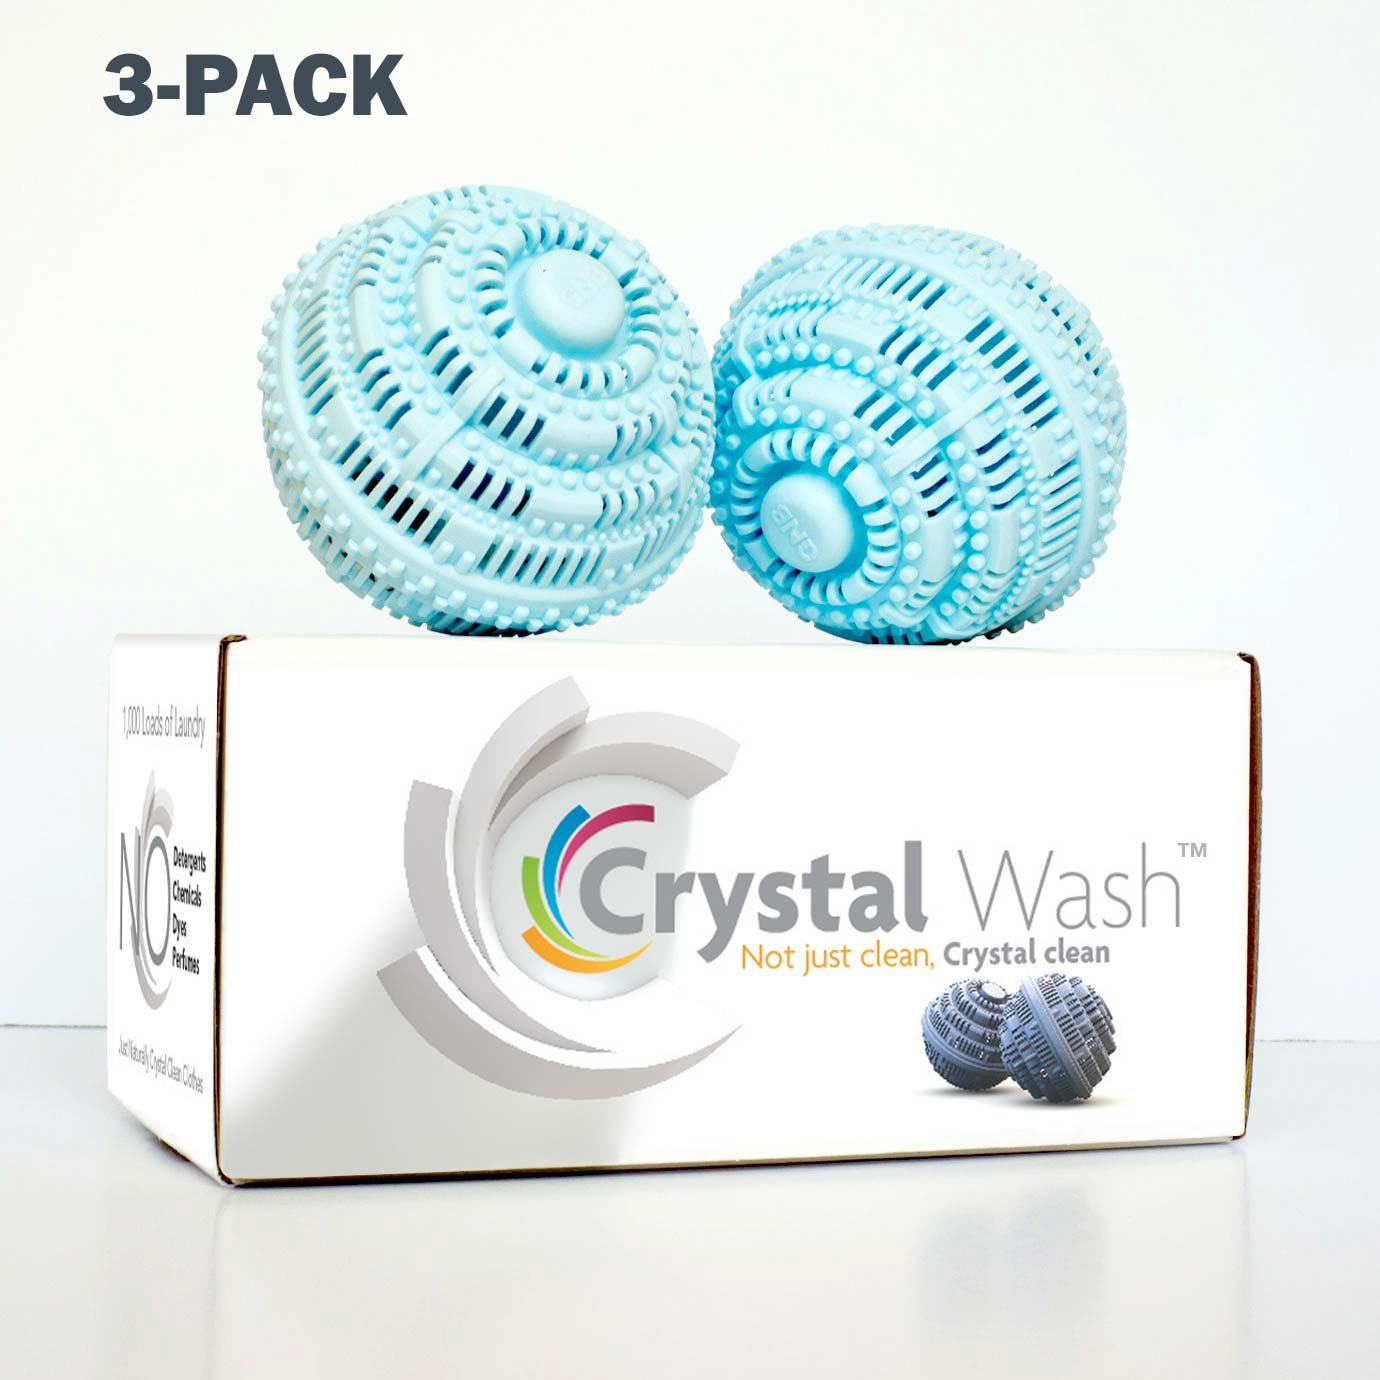 Crystal Wash - Wash Balls - Laundry Detergent Alternative - All Natural (3 pack - $157.99 = $22 Savings)